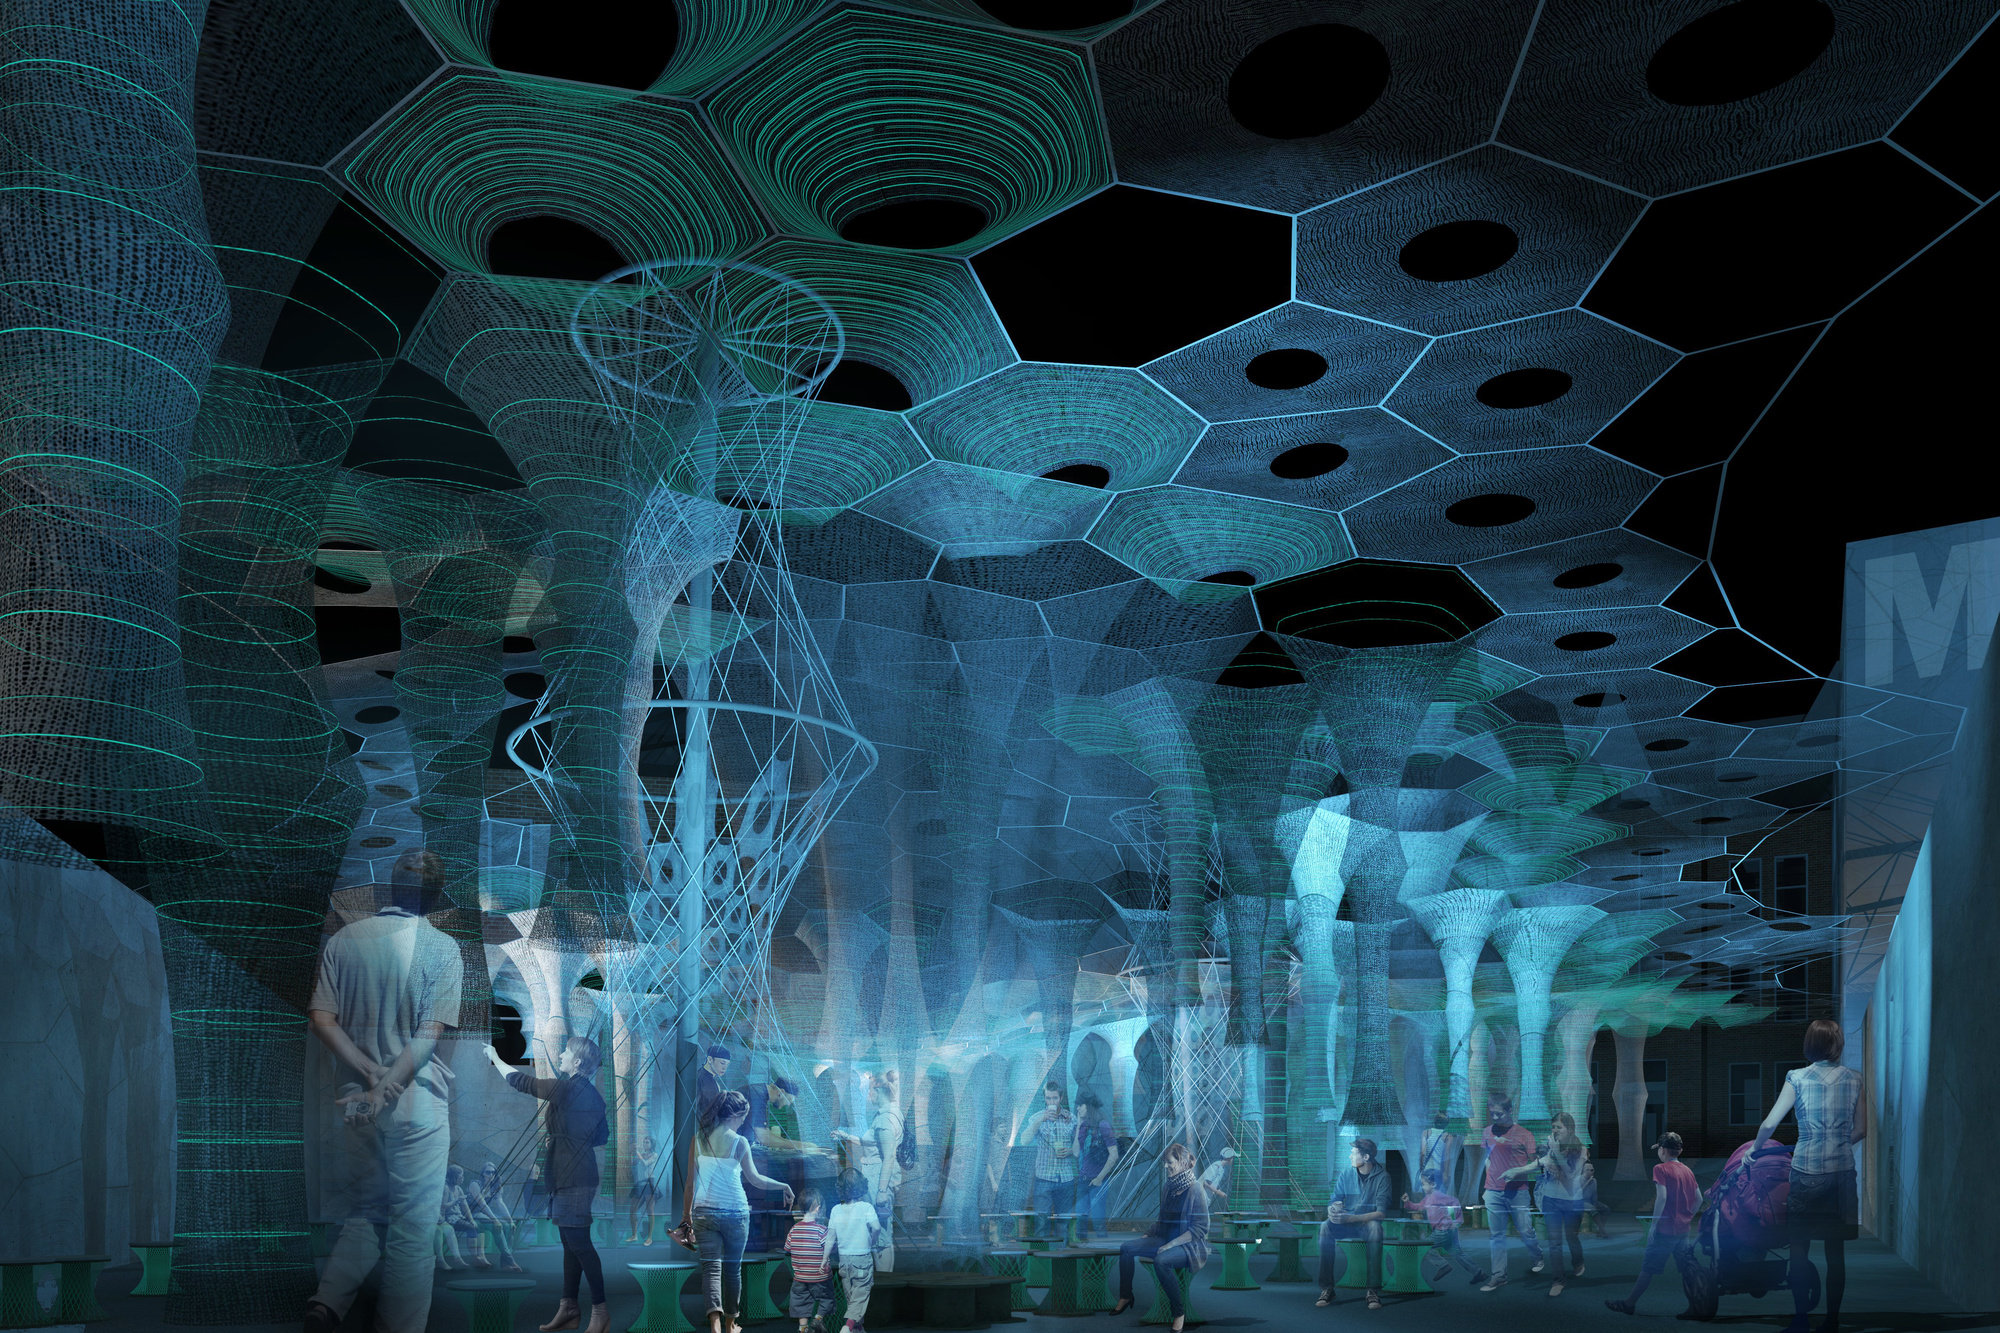 Moma Ps1 S Courtyard Will Be Transformed By A Robotically